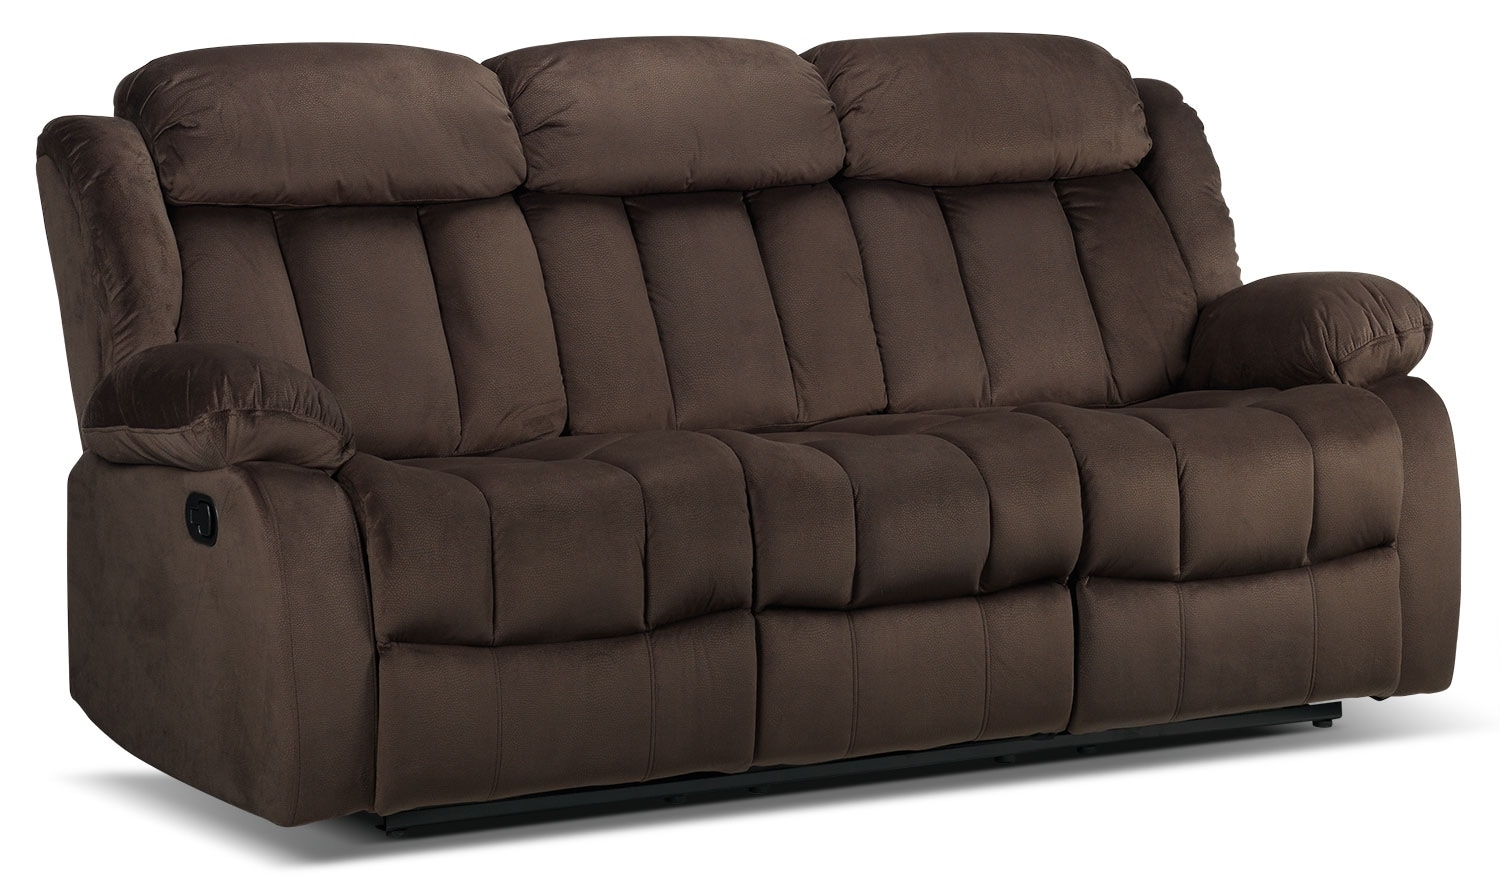 Alabama Reclining Sofa